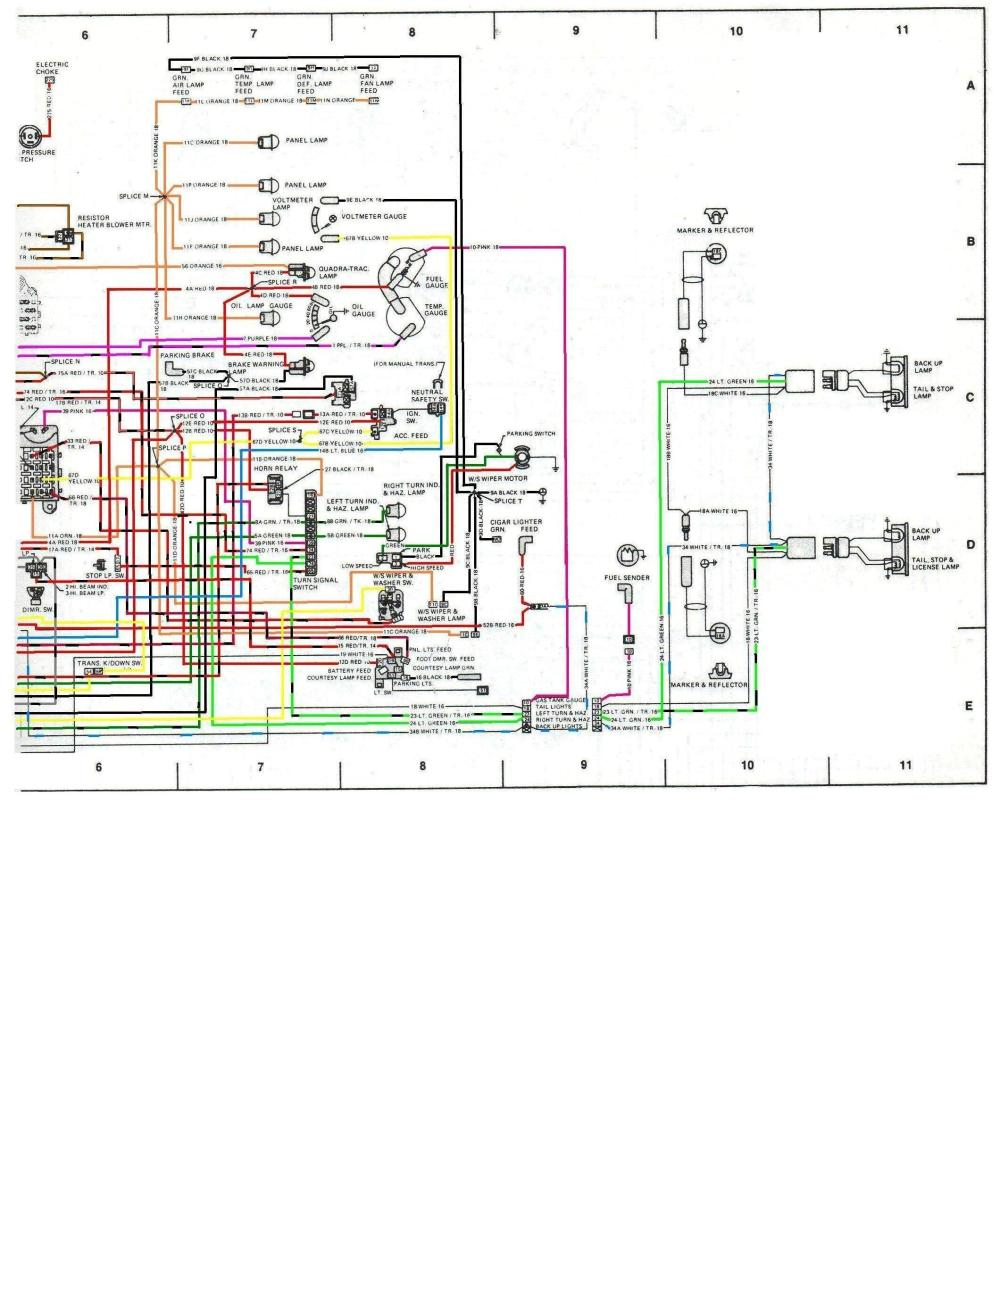 medium resolution of jeep cj7 firewall wiring harness color diagram wiring diagram yer cj7 firewall wiring plug diagram